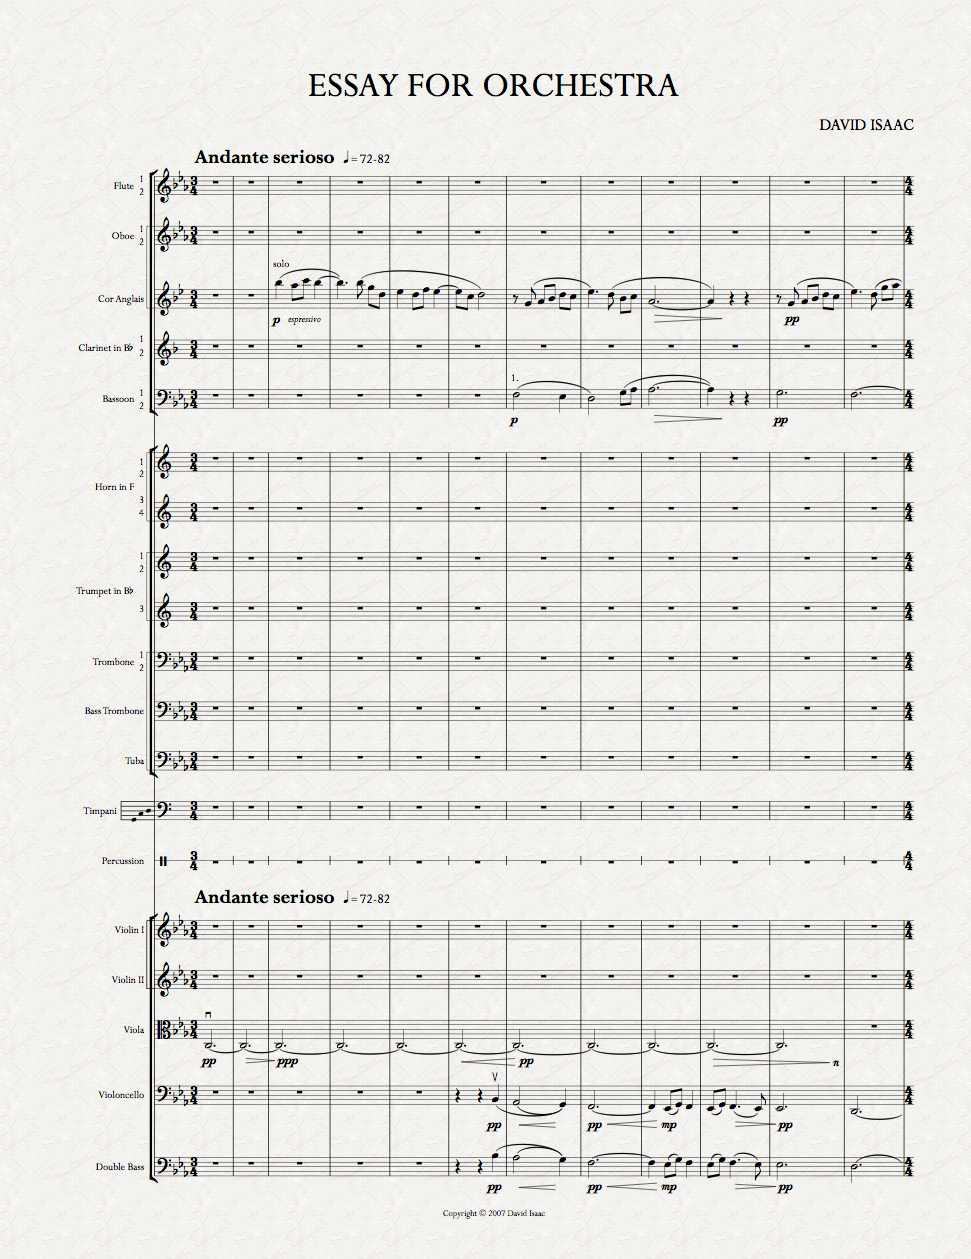 david isaac essay for orchestra view page one